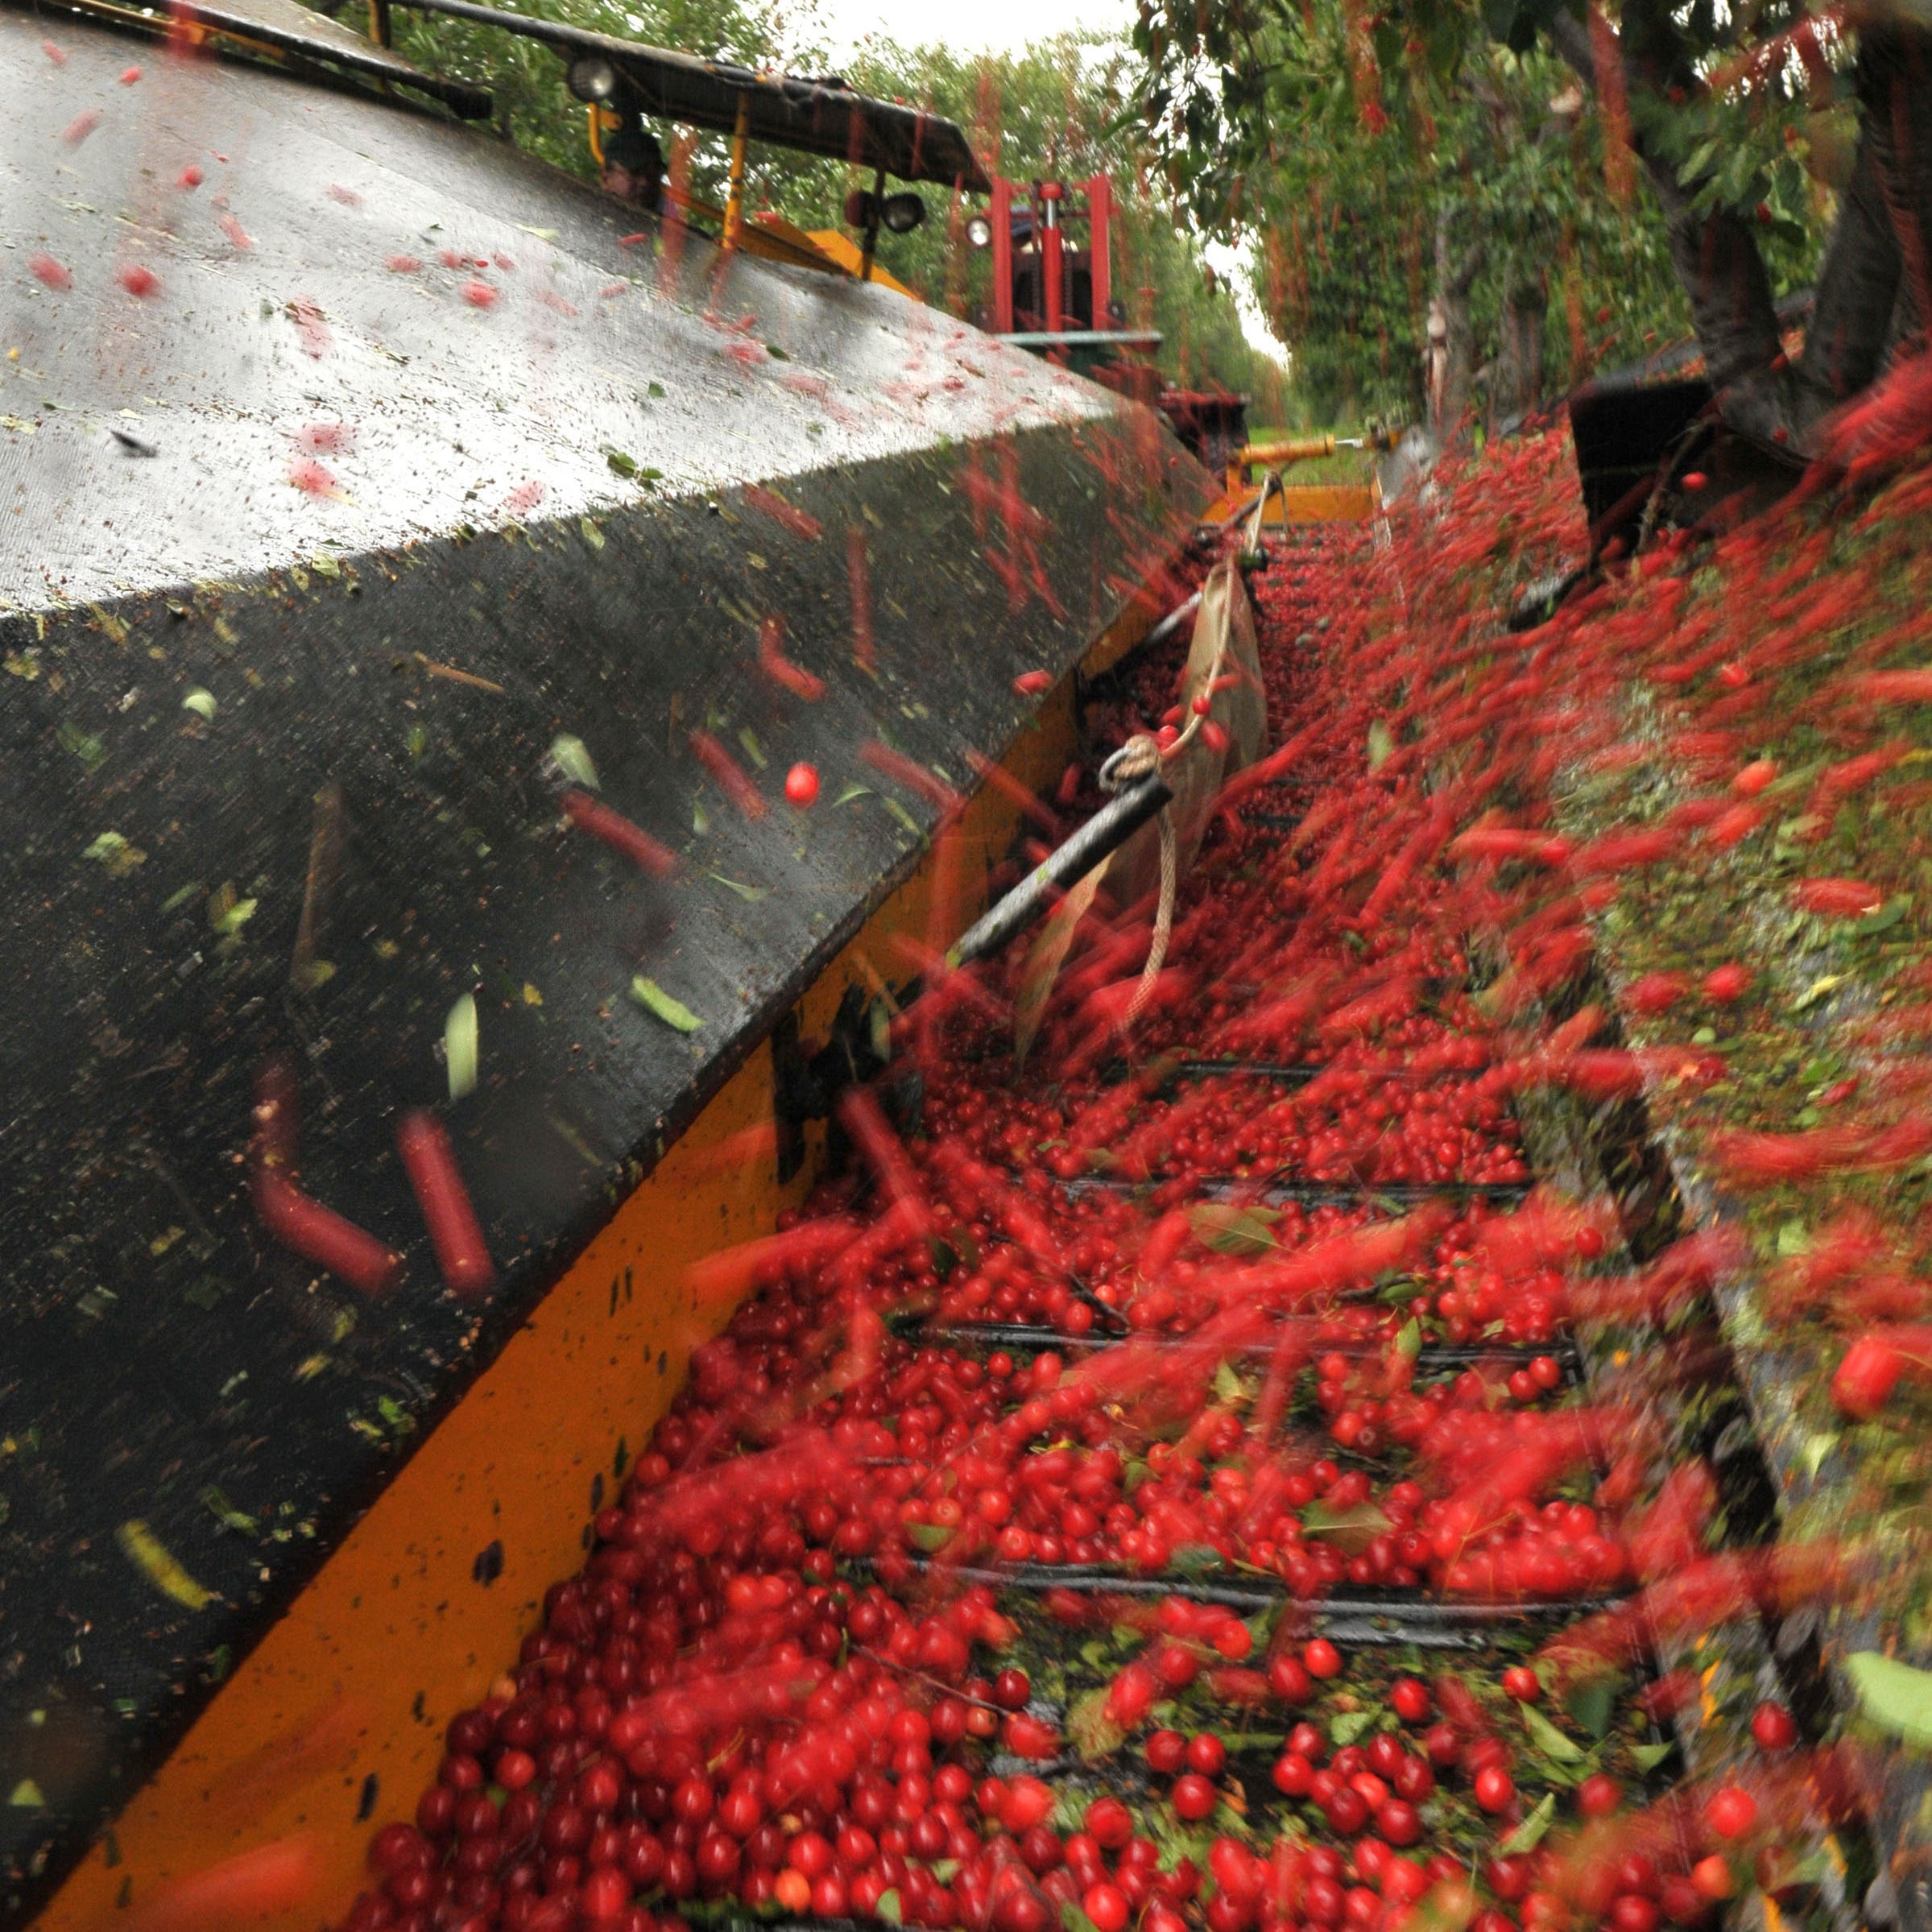 Michigan cherry industry sour over Turkish imports